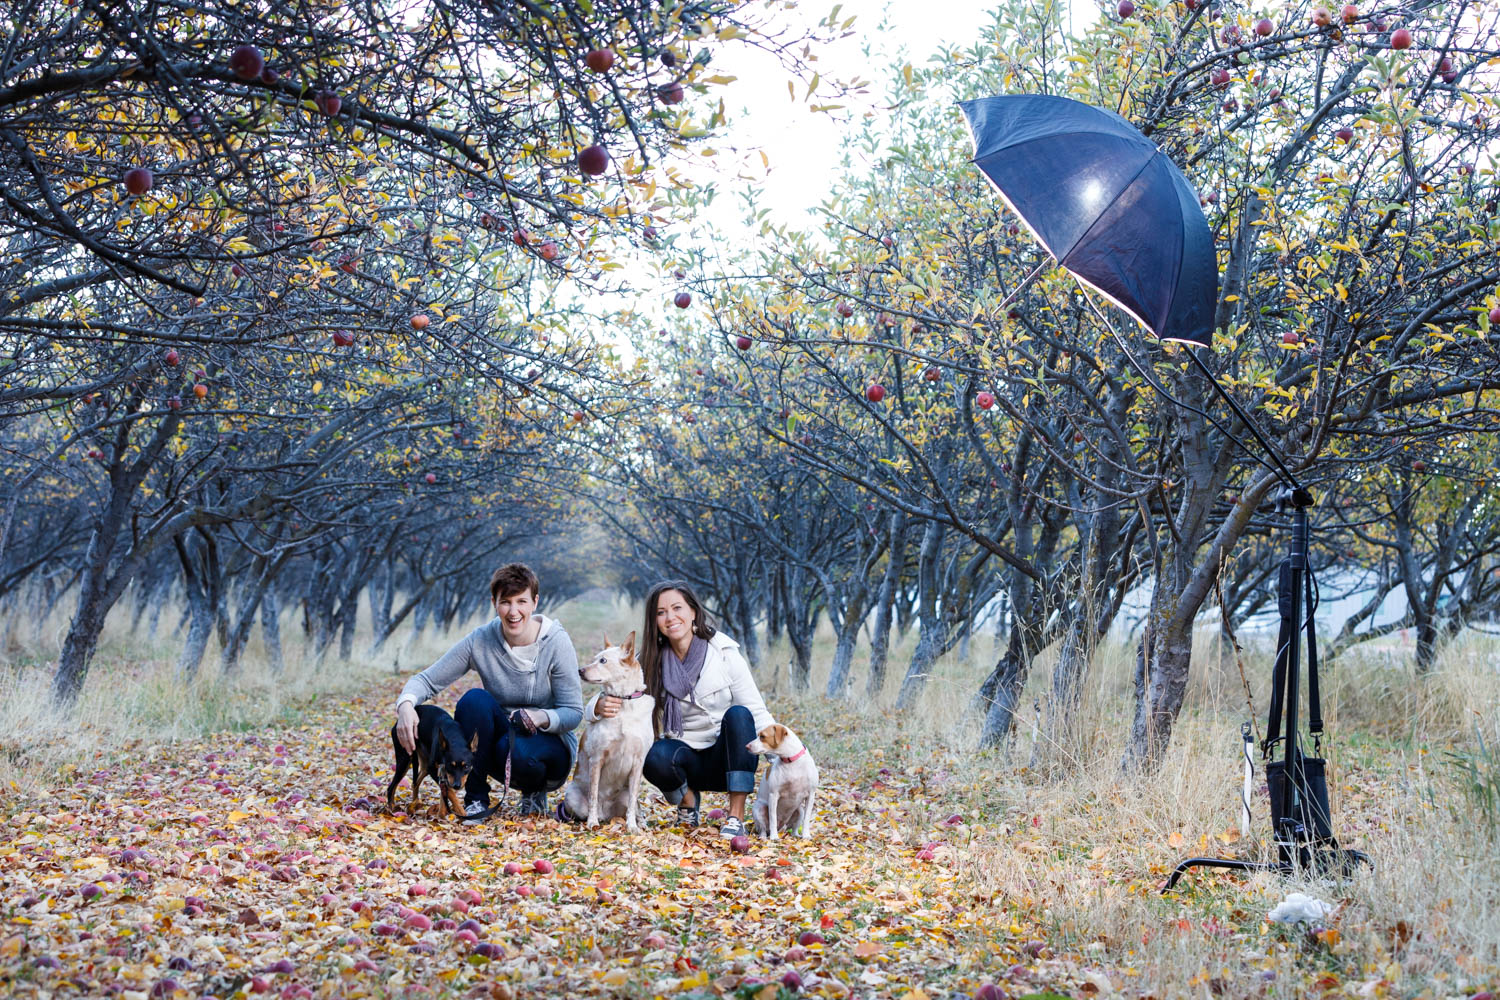 Behind the scenes of the orchard shoot